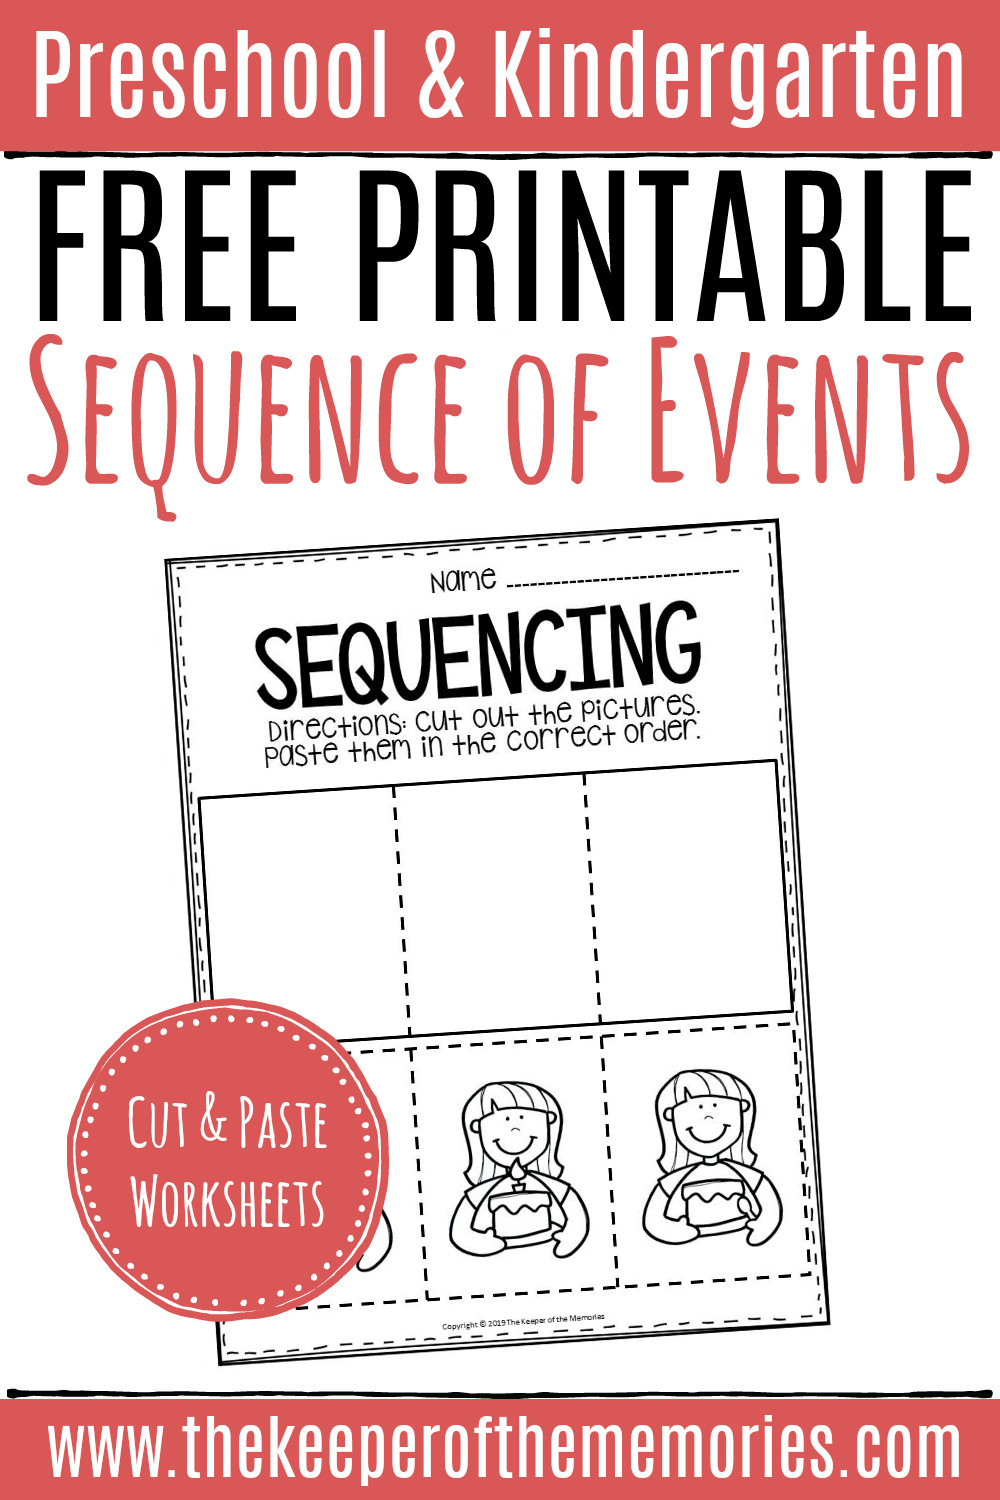 3rd Grade Sequencing Worksheets Free Printable Sequence events Worksheets Sequencing Cut